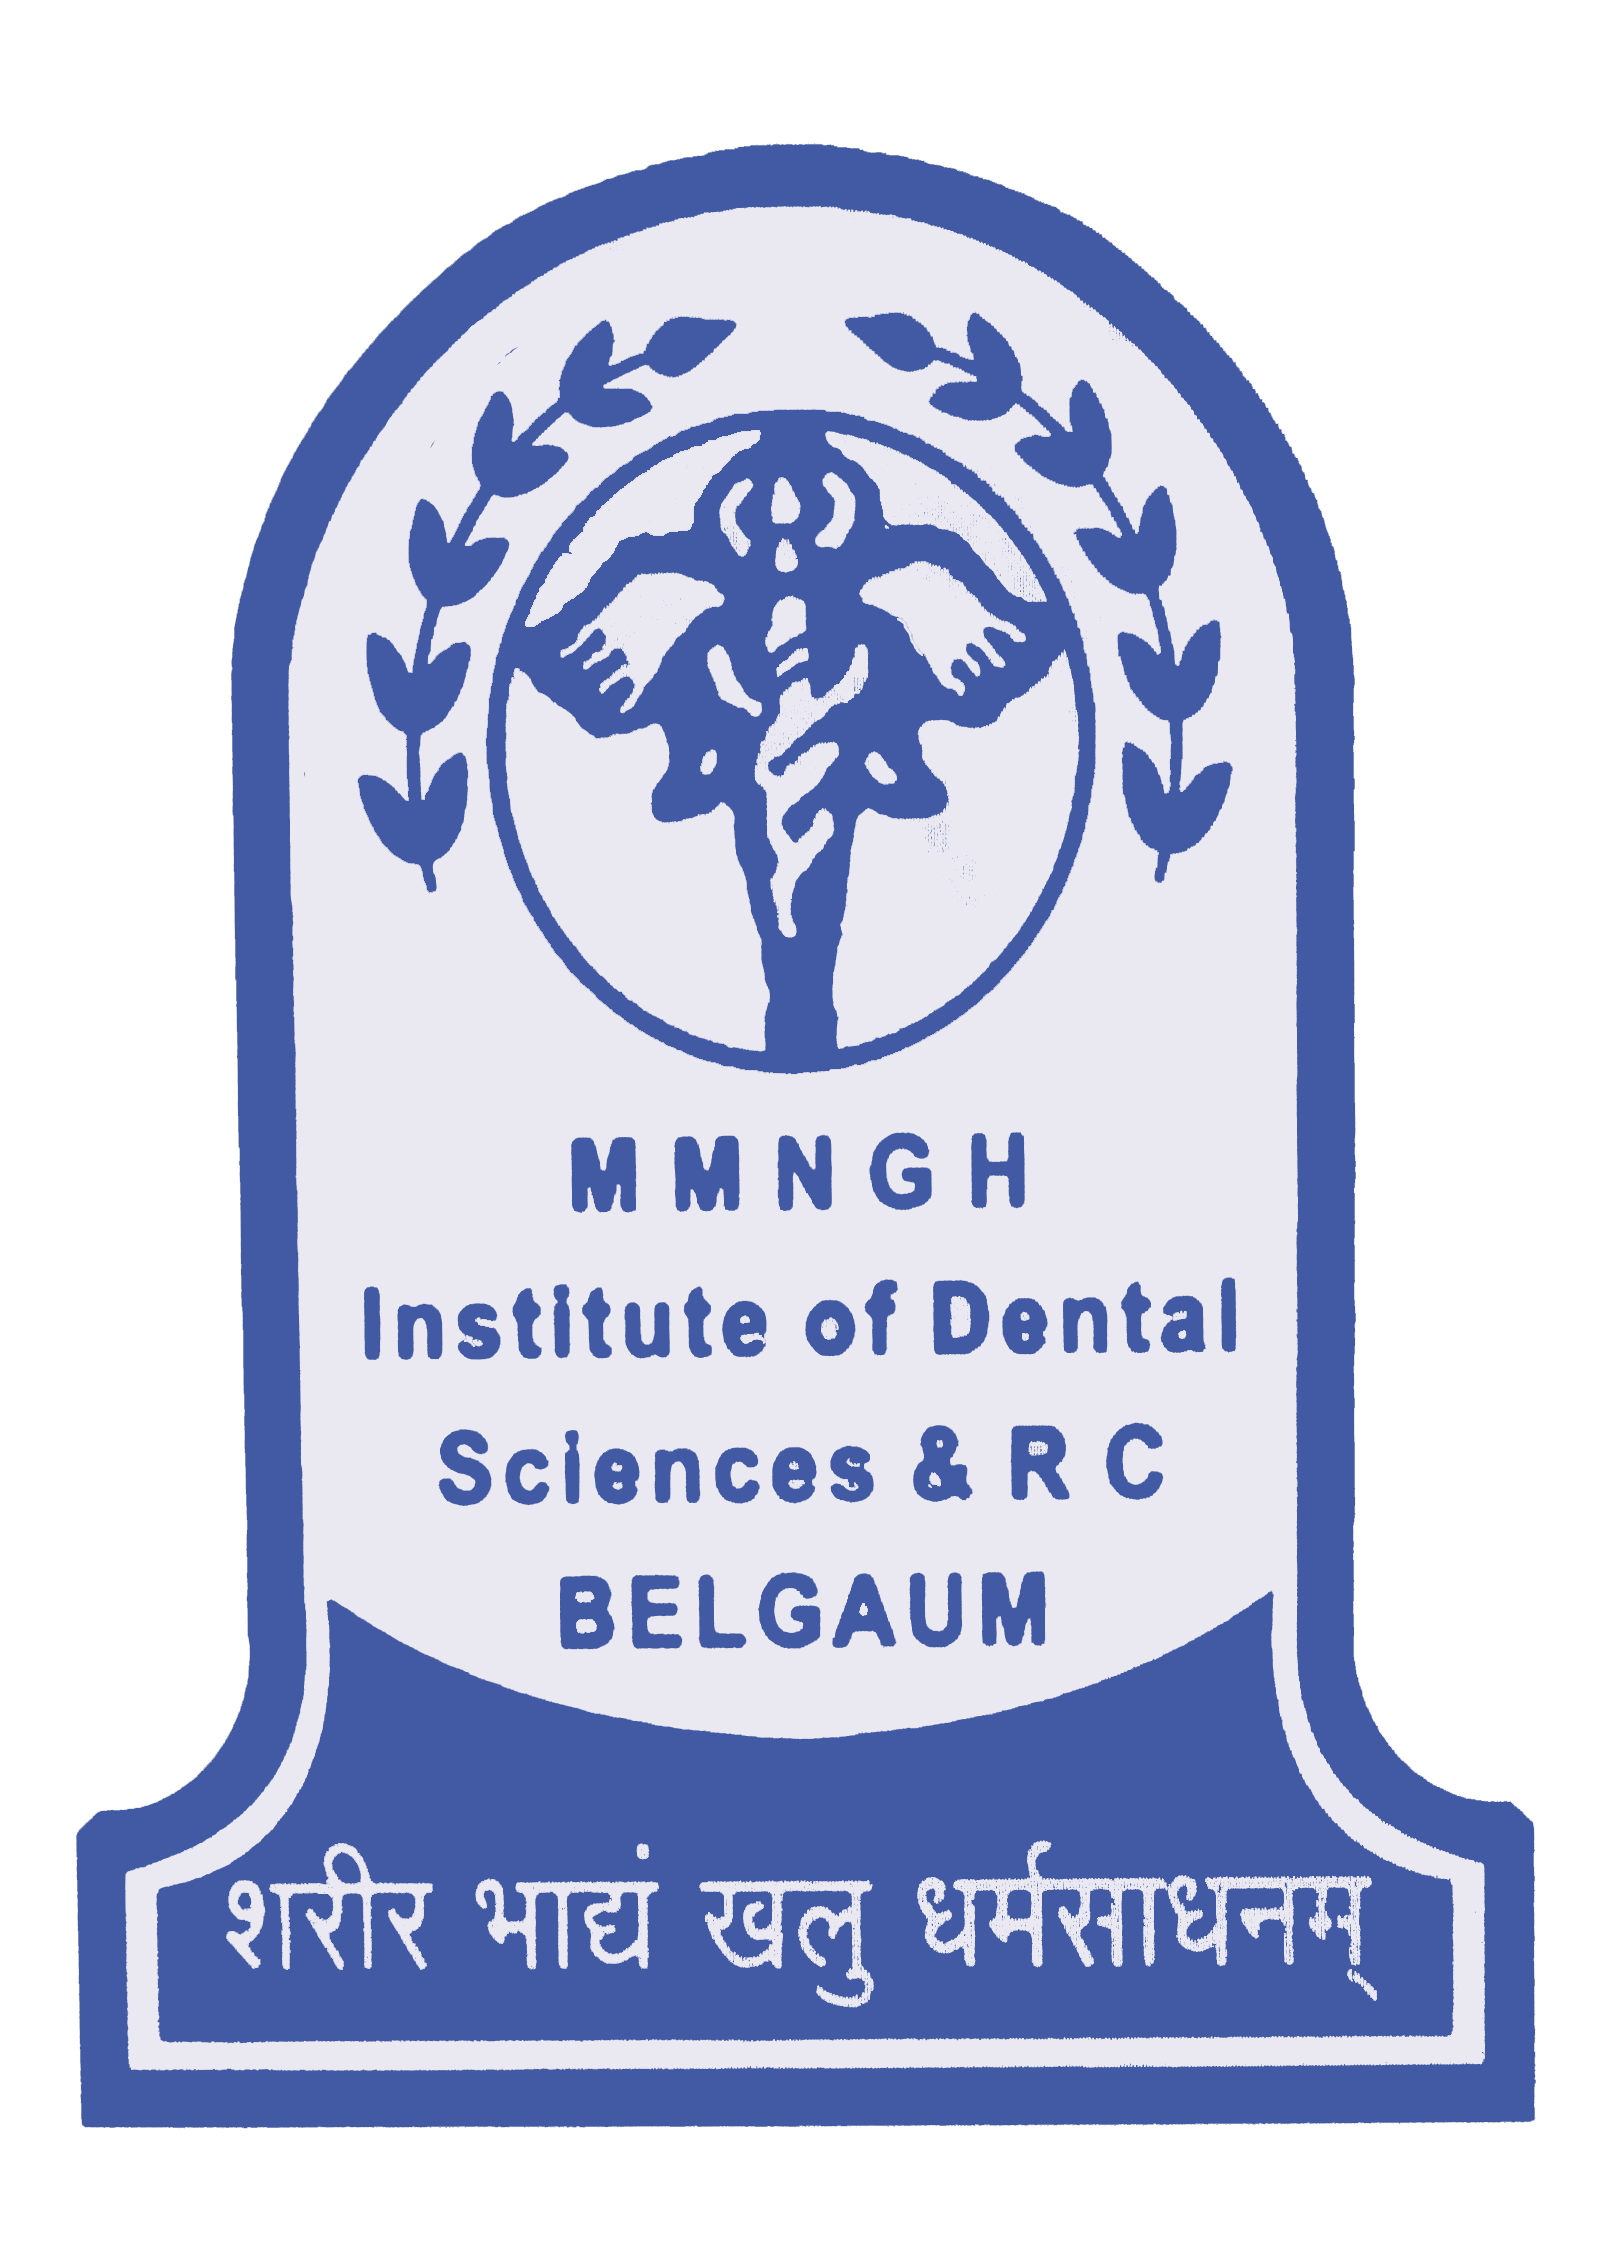 Maratha Mandal's Dental College and Research Centre